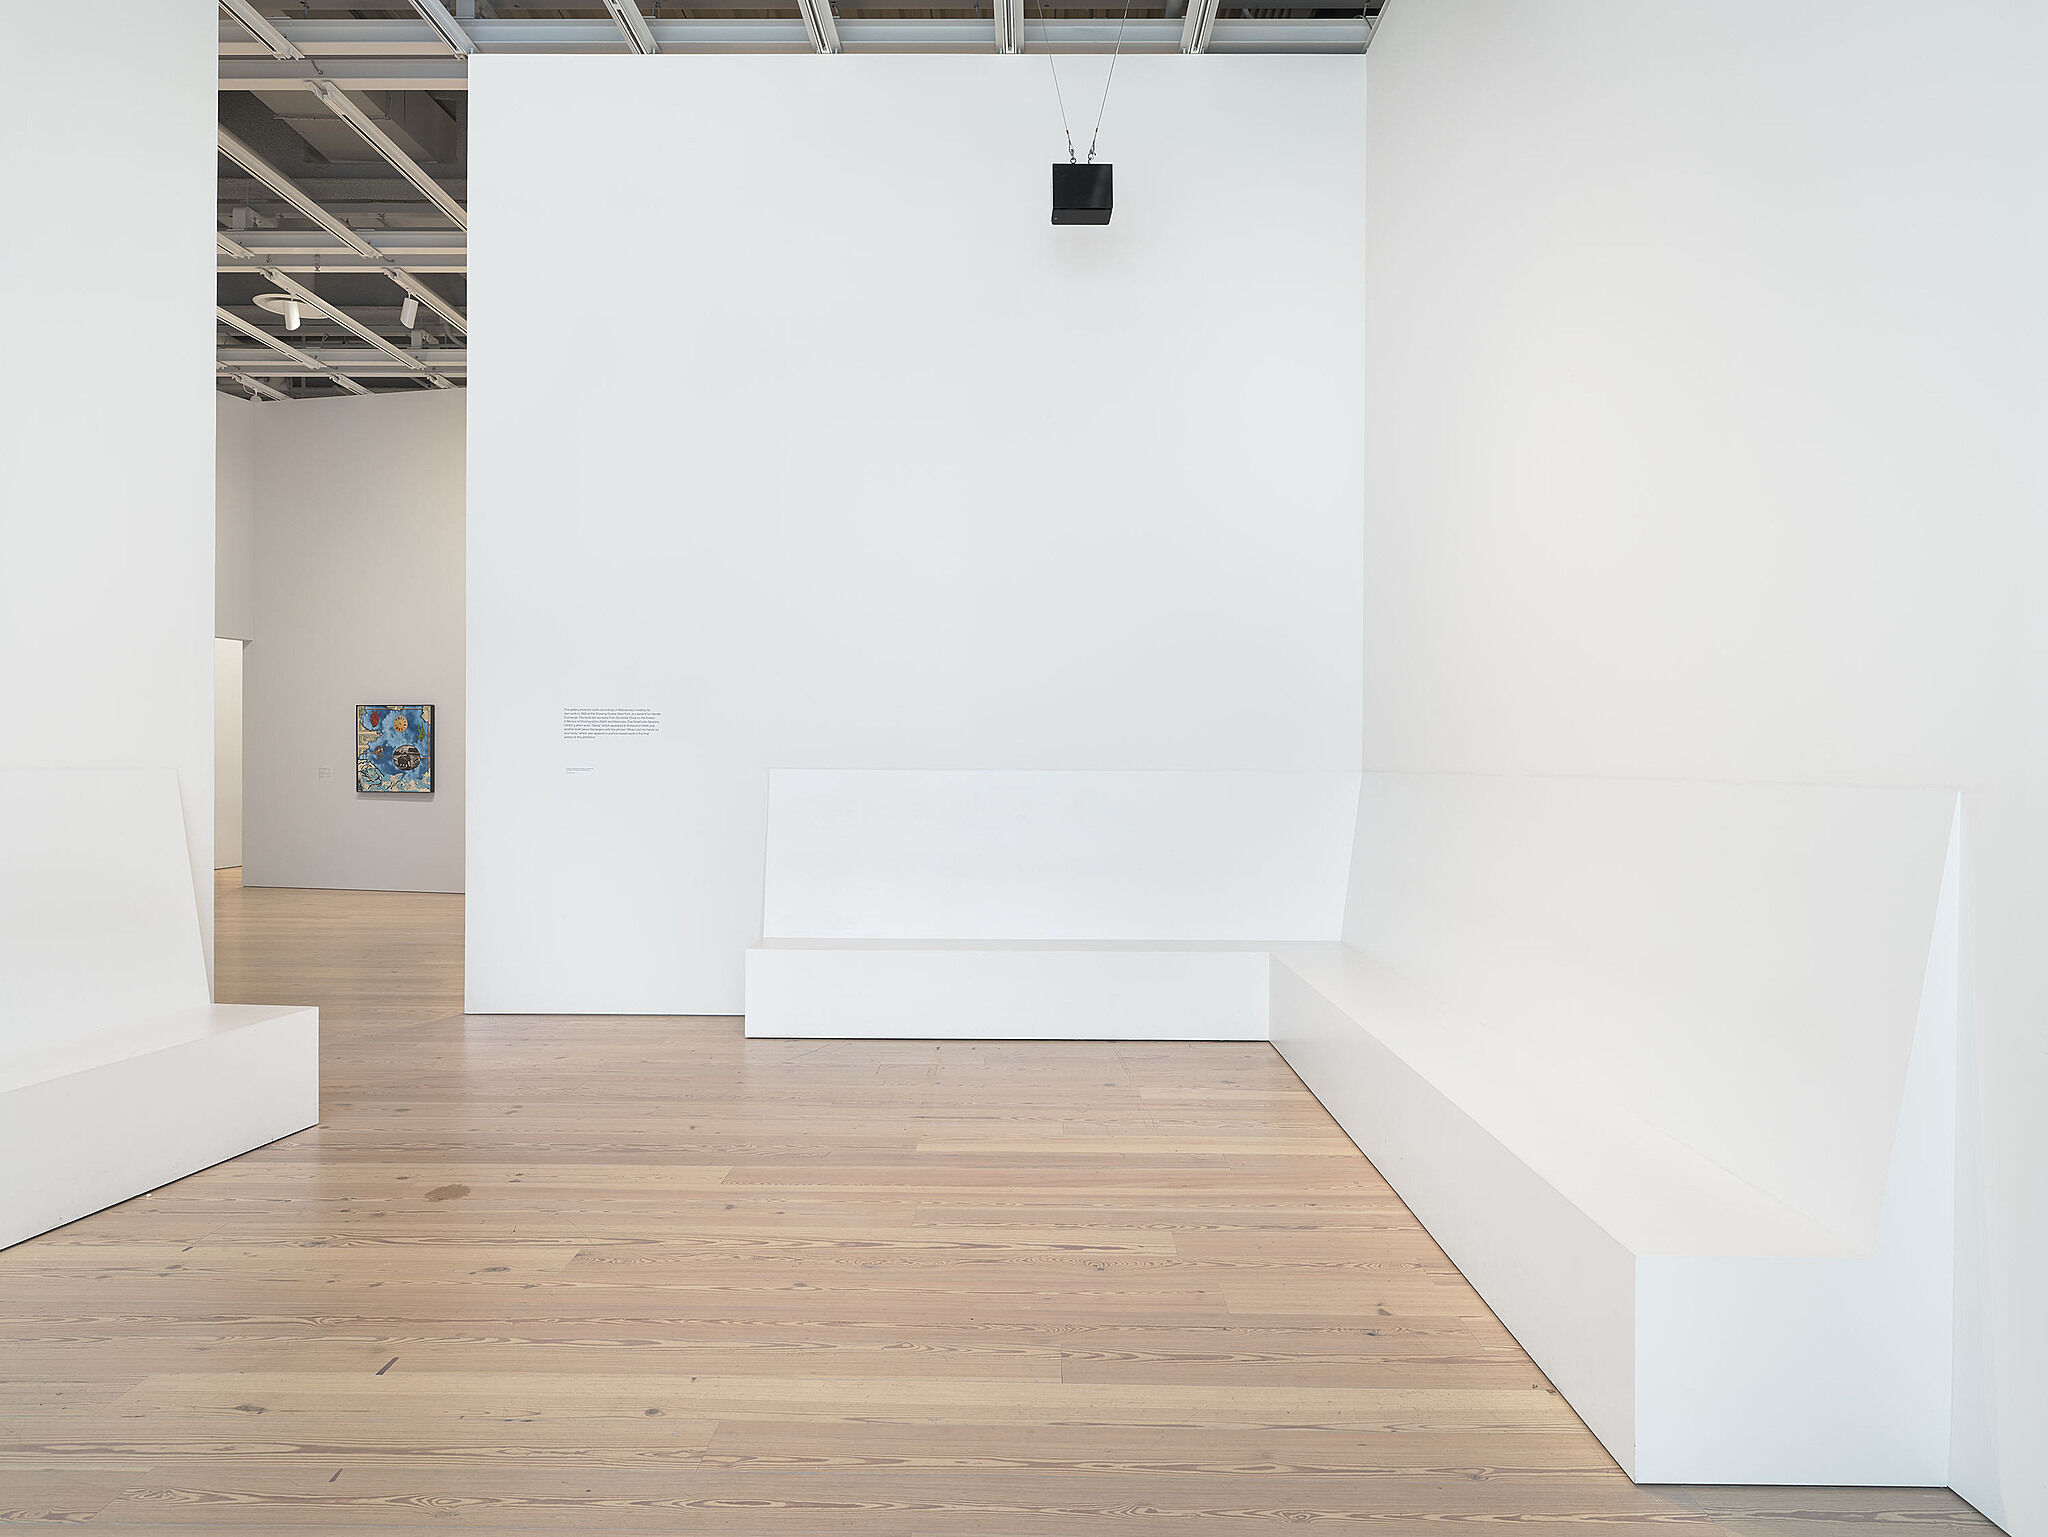 An image of the Whitney galleries with a small speaker on the wall